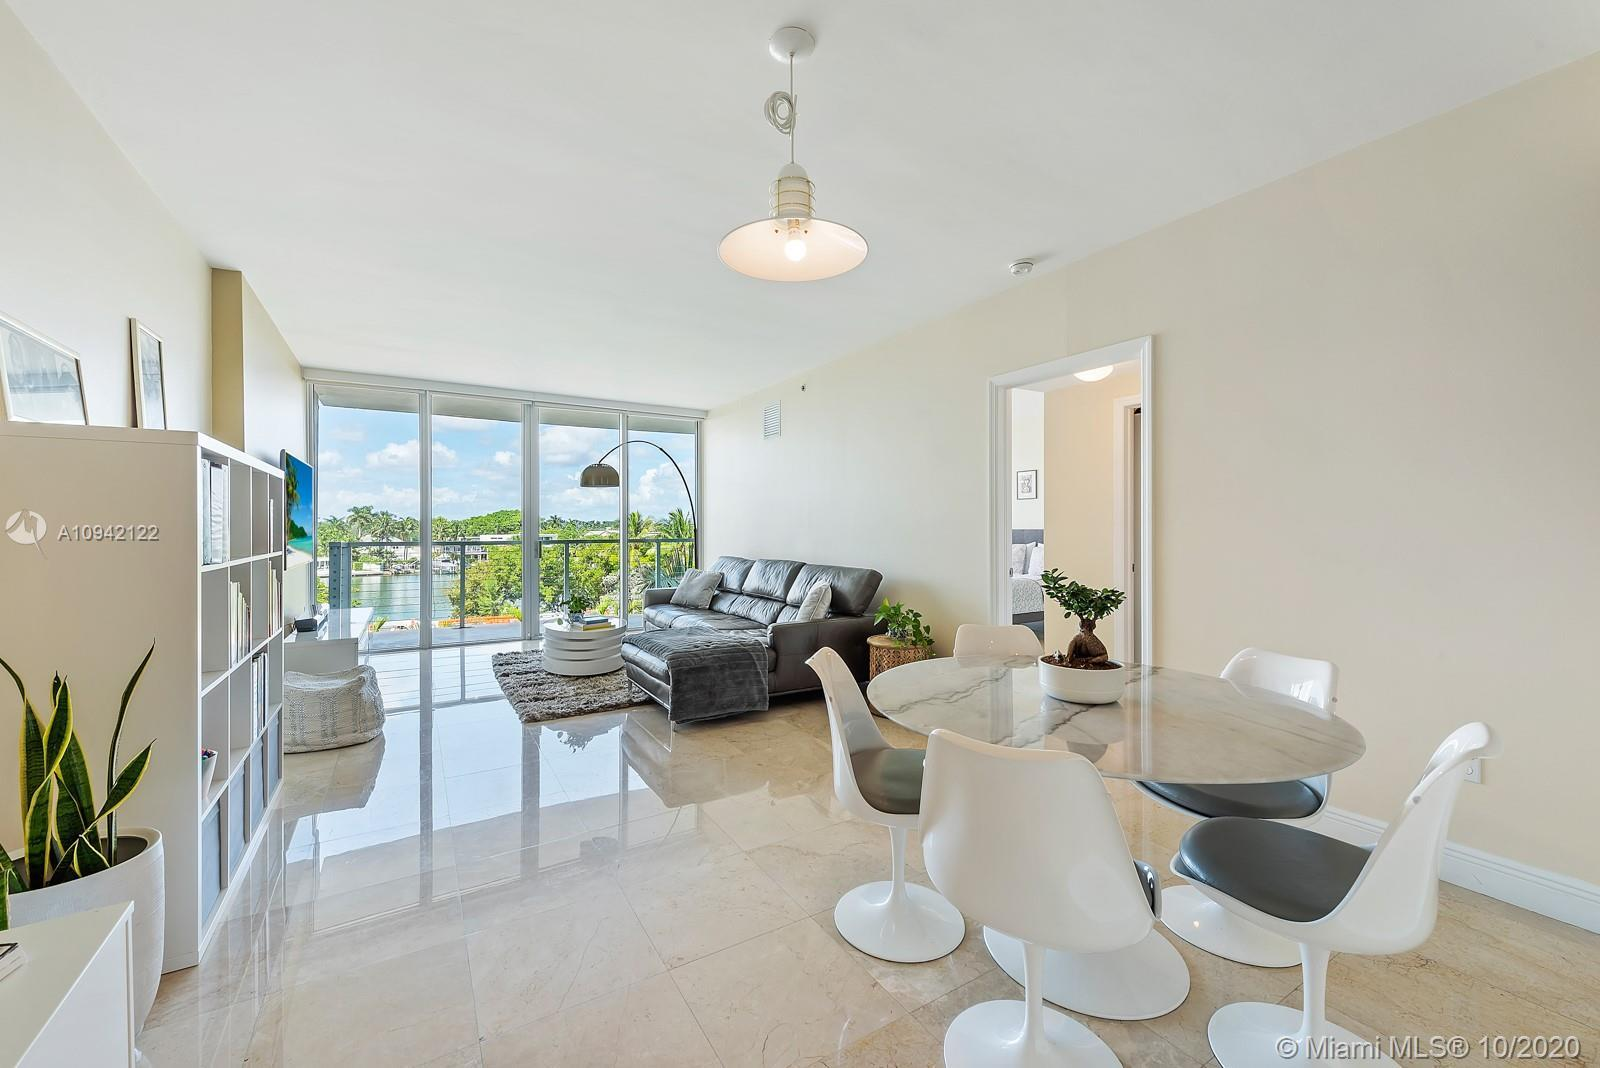 Bright Waterfront contemporary 2 Bed/2 Bath residence just across the street from the beach. This me